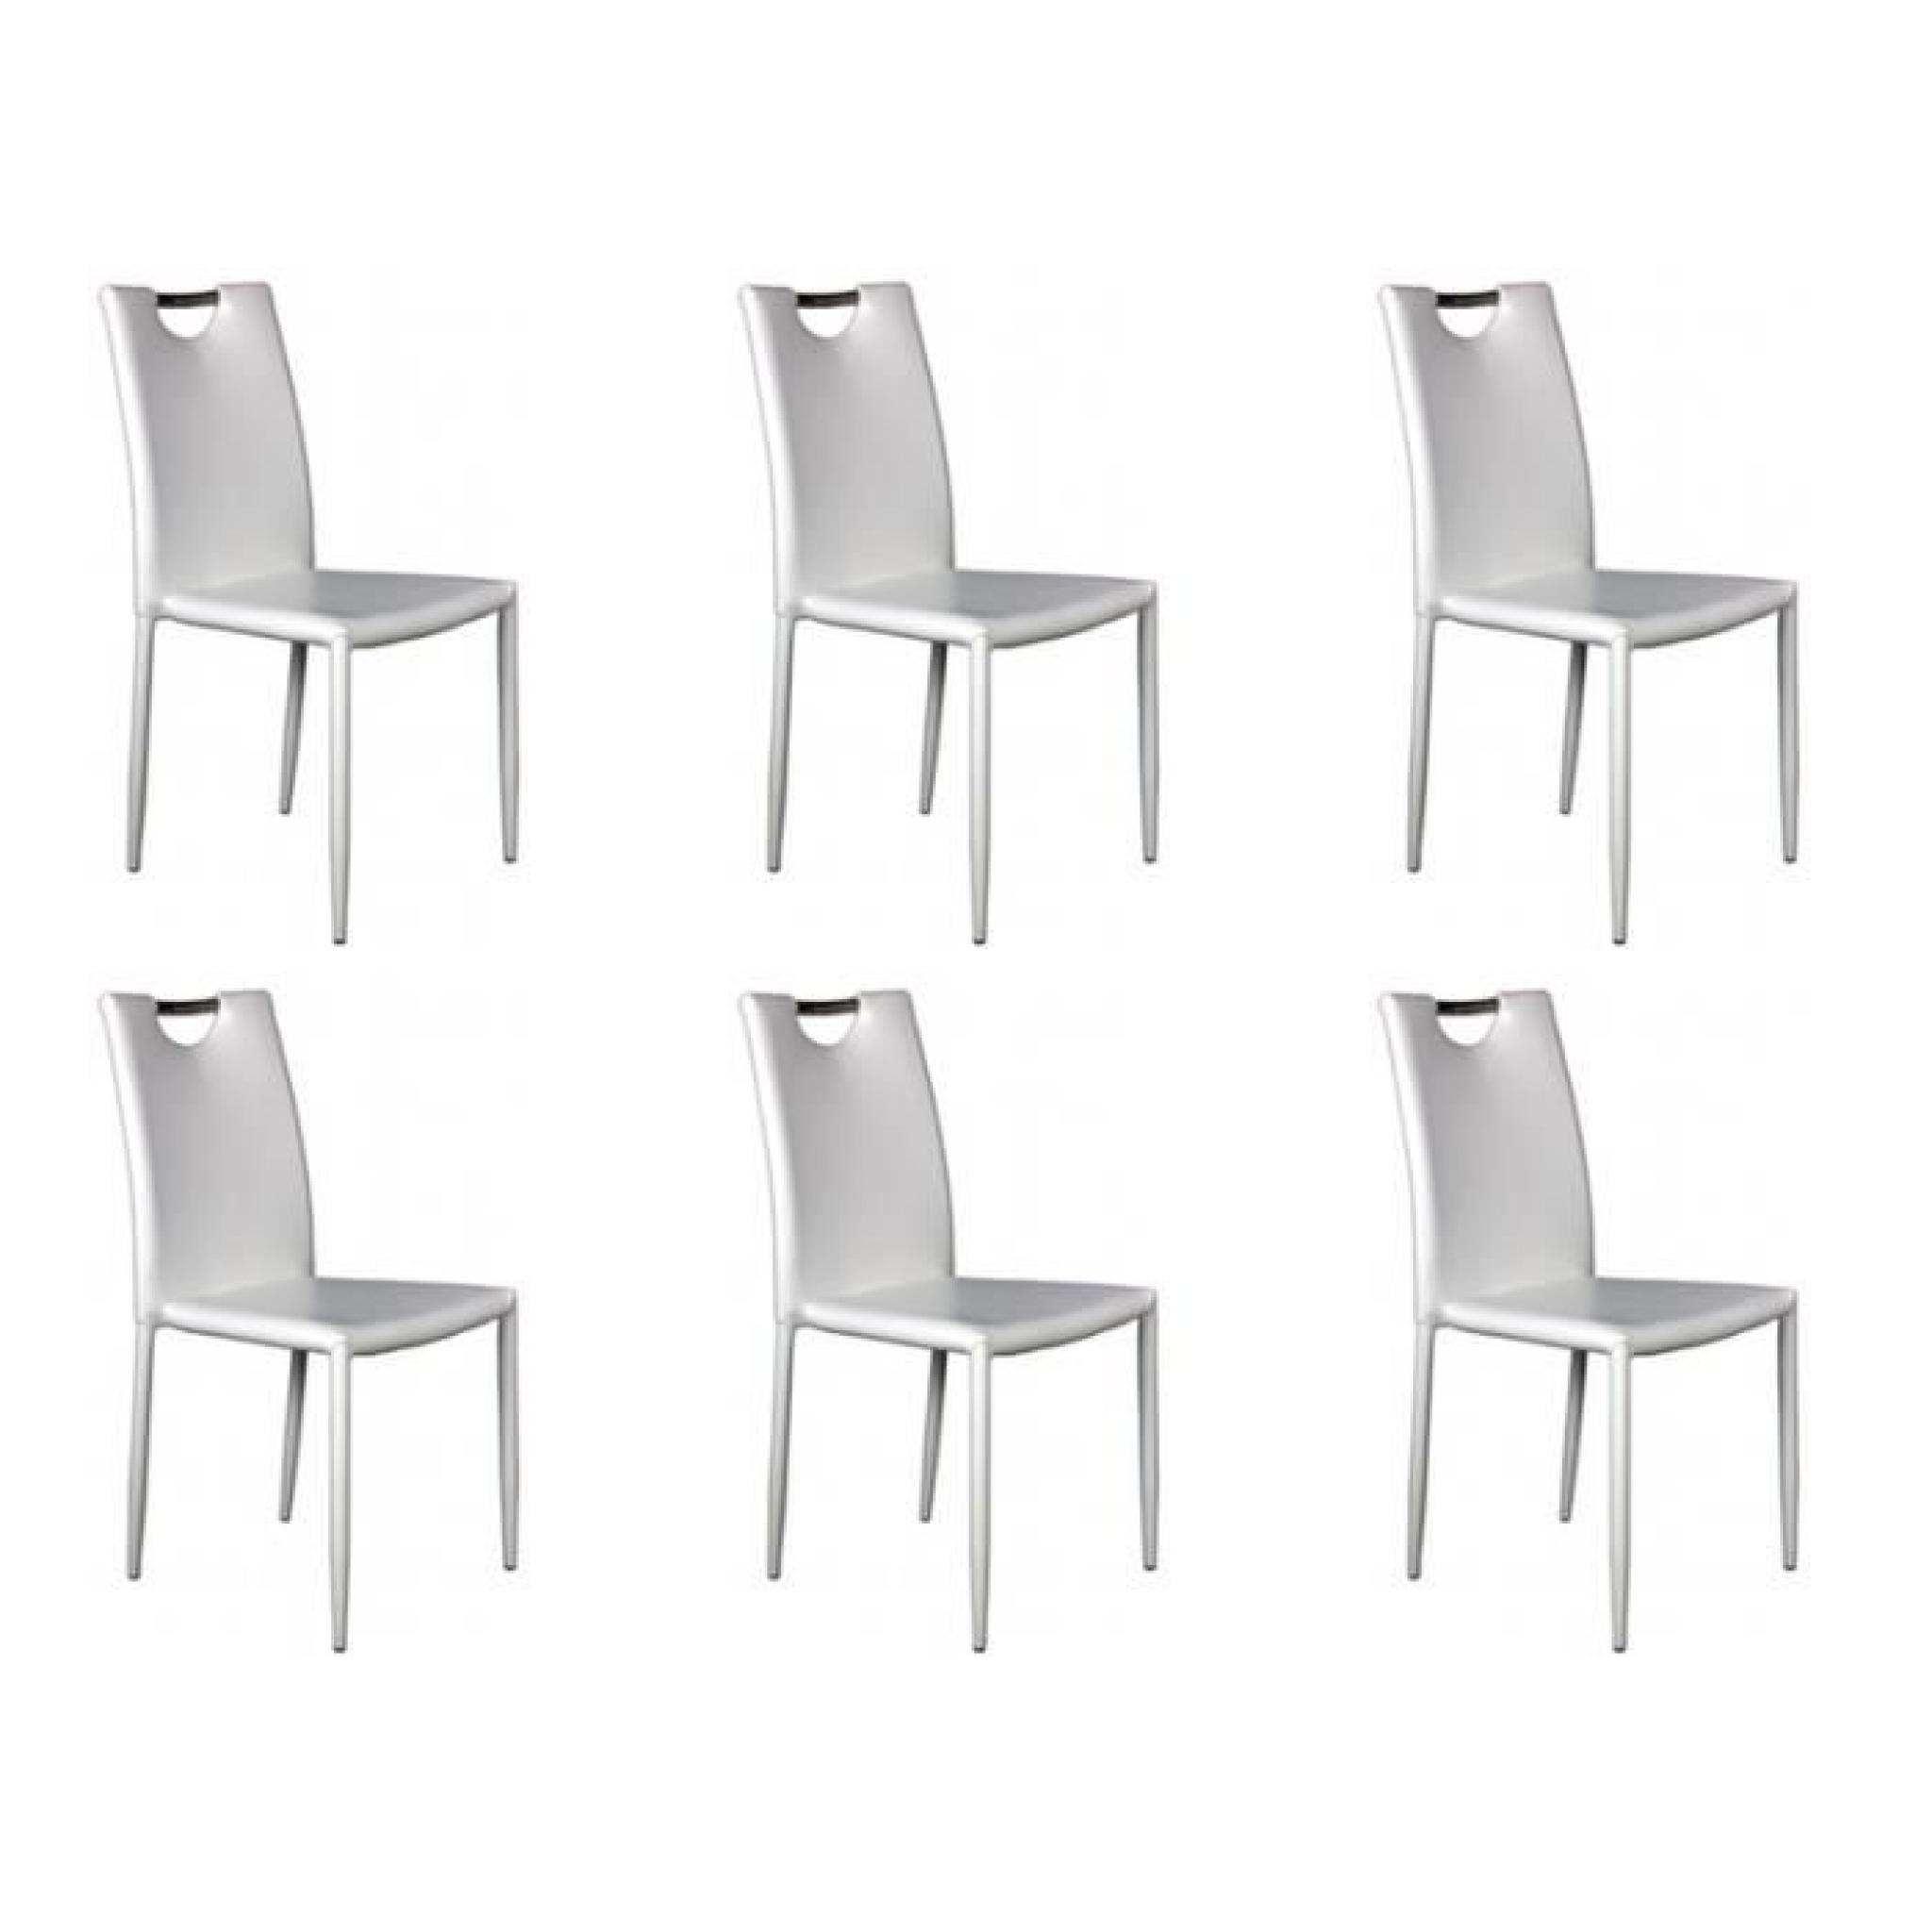 Kira lot 6 chaises blanches achat vente chaise salle a for Lot 6 chaises design